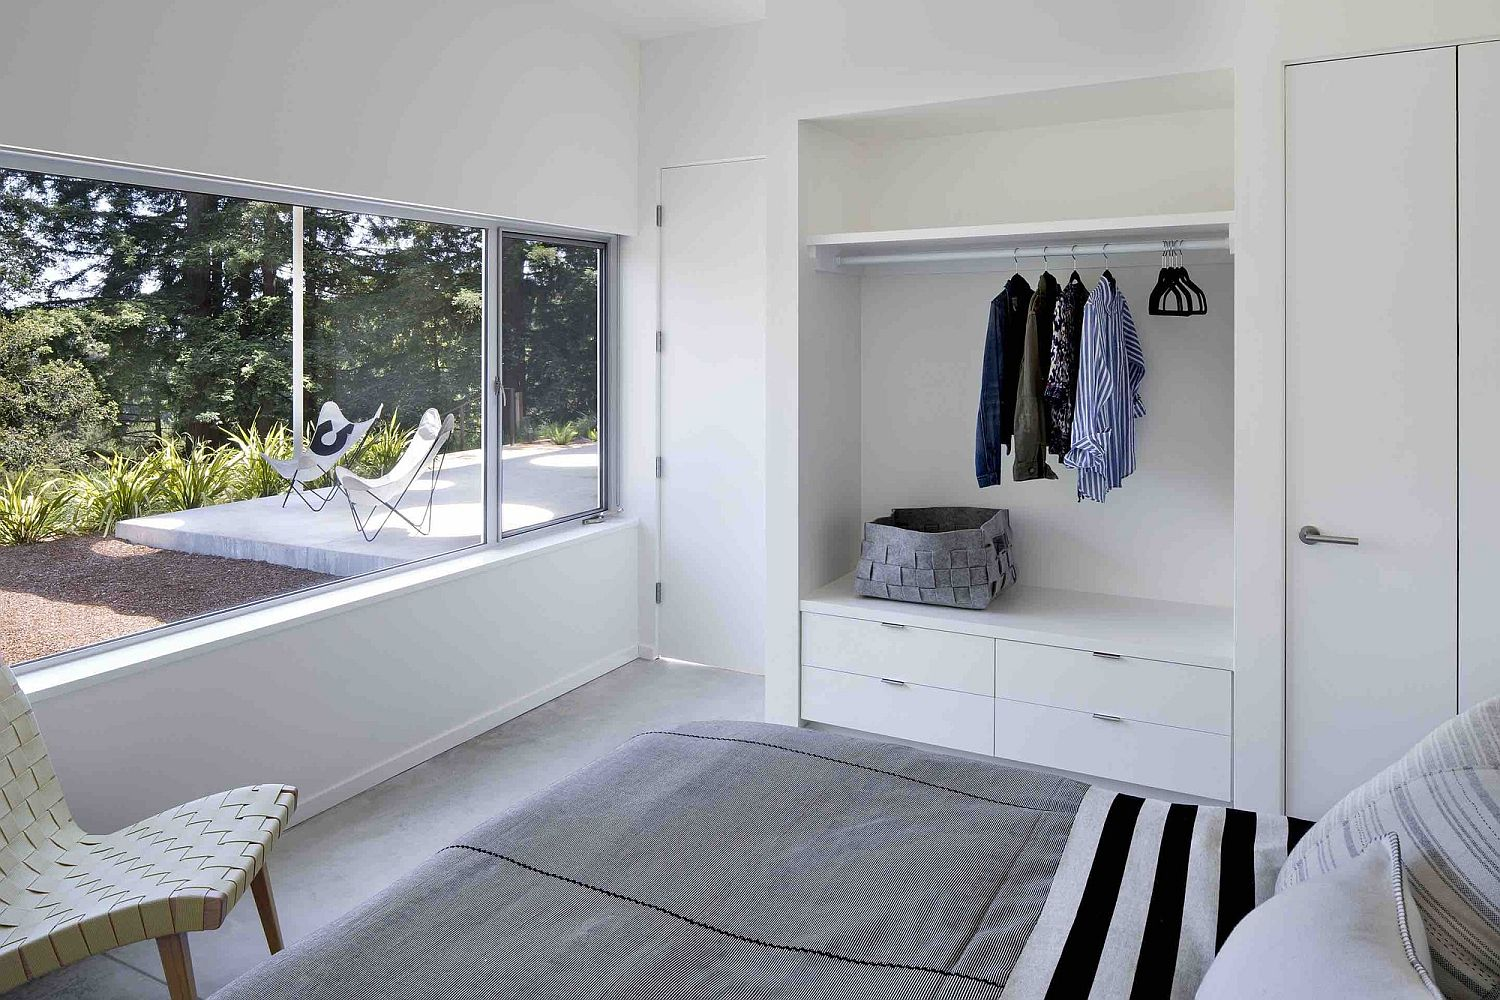 Bedroom in white is tucked away at the rear of the guesthouse to offer privacy